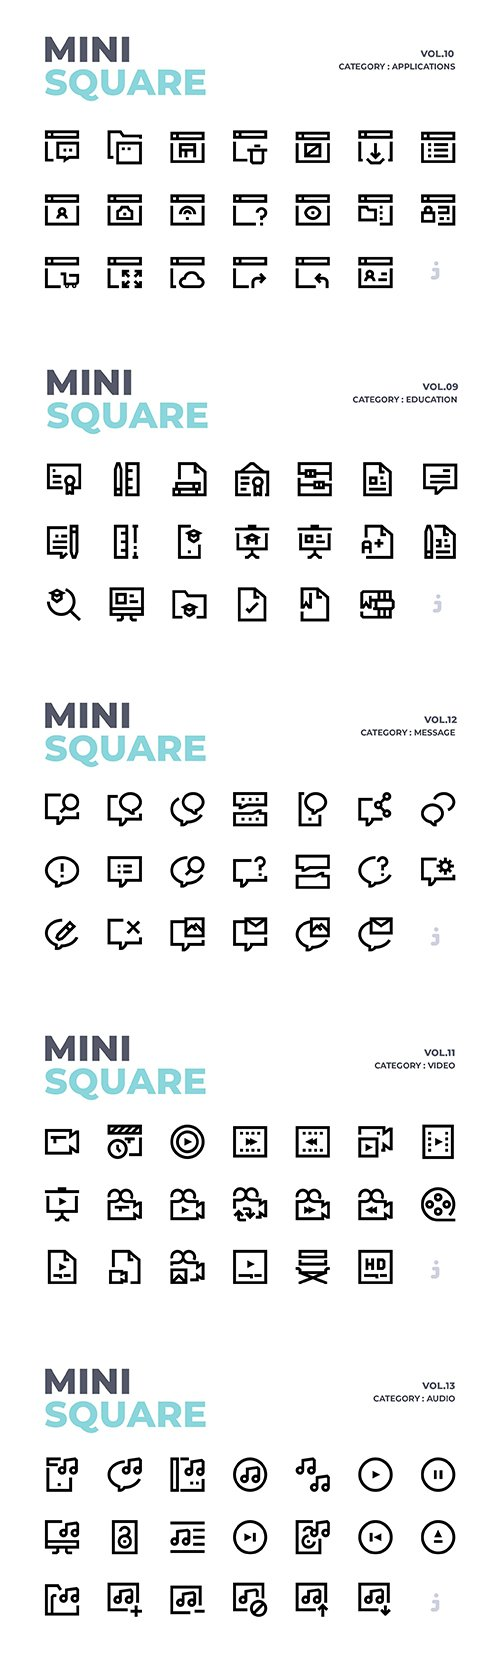 Mini square - 300 Education, Applications, Video, Audio and Message Icons Vector Pack